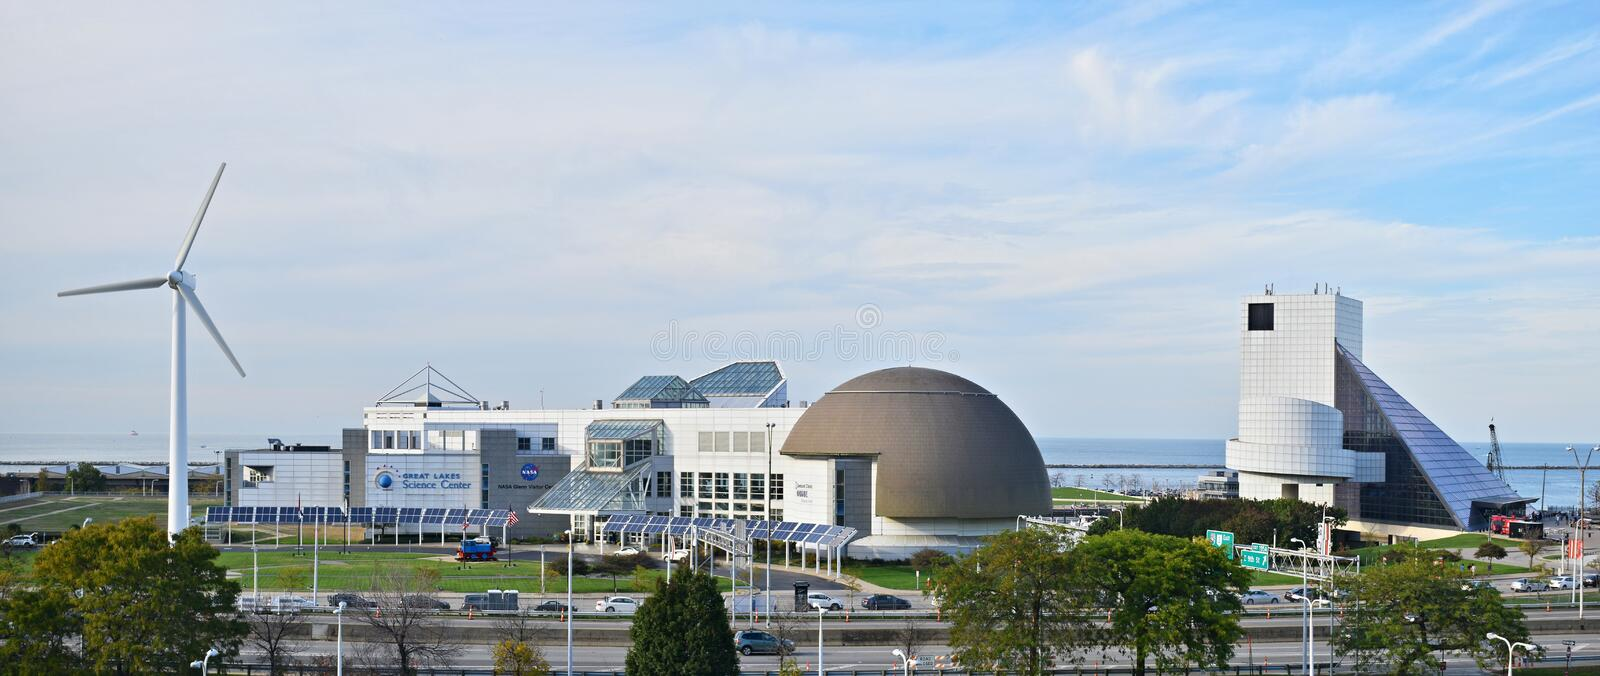 The Great Lakes Science Center in Cleveland, Ohio stock photography